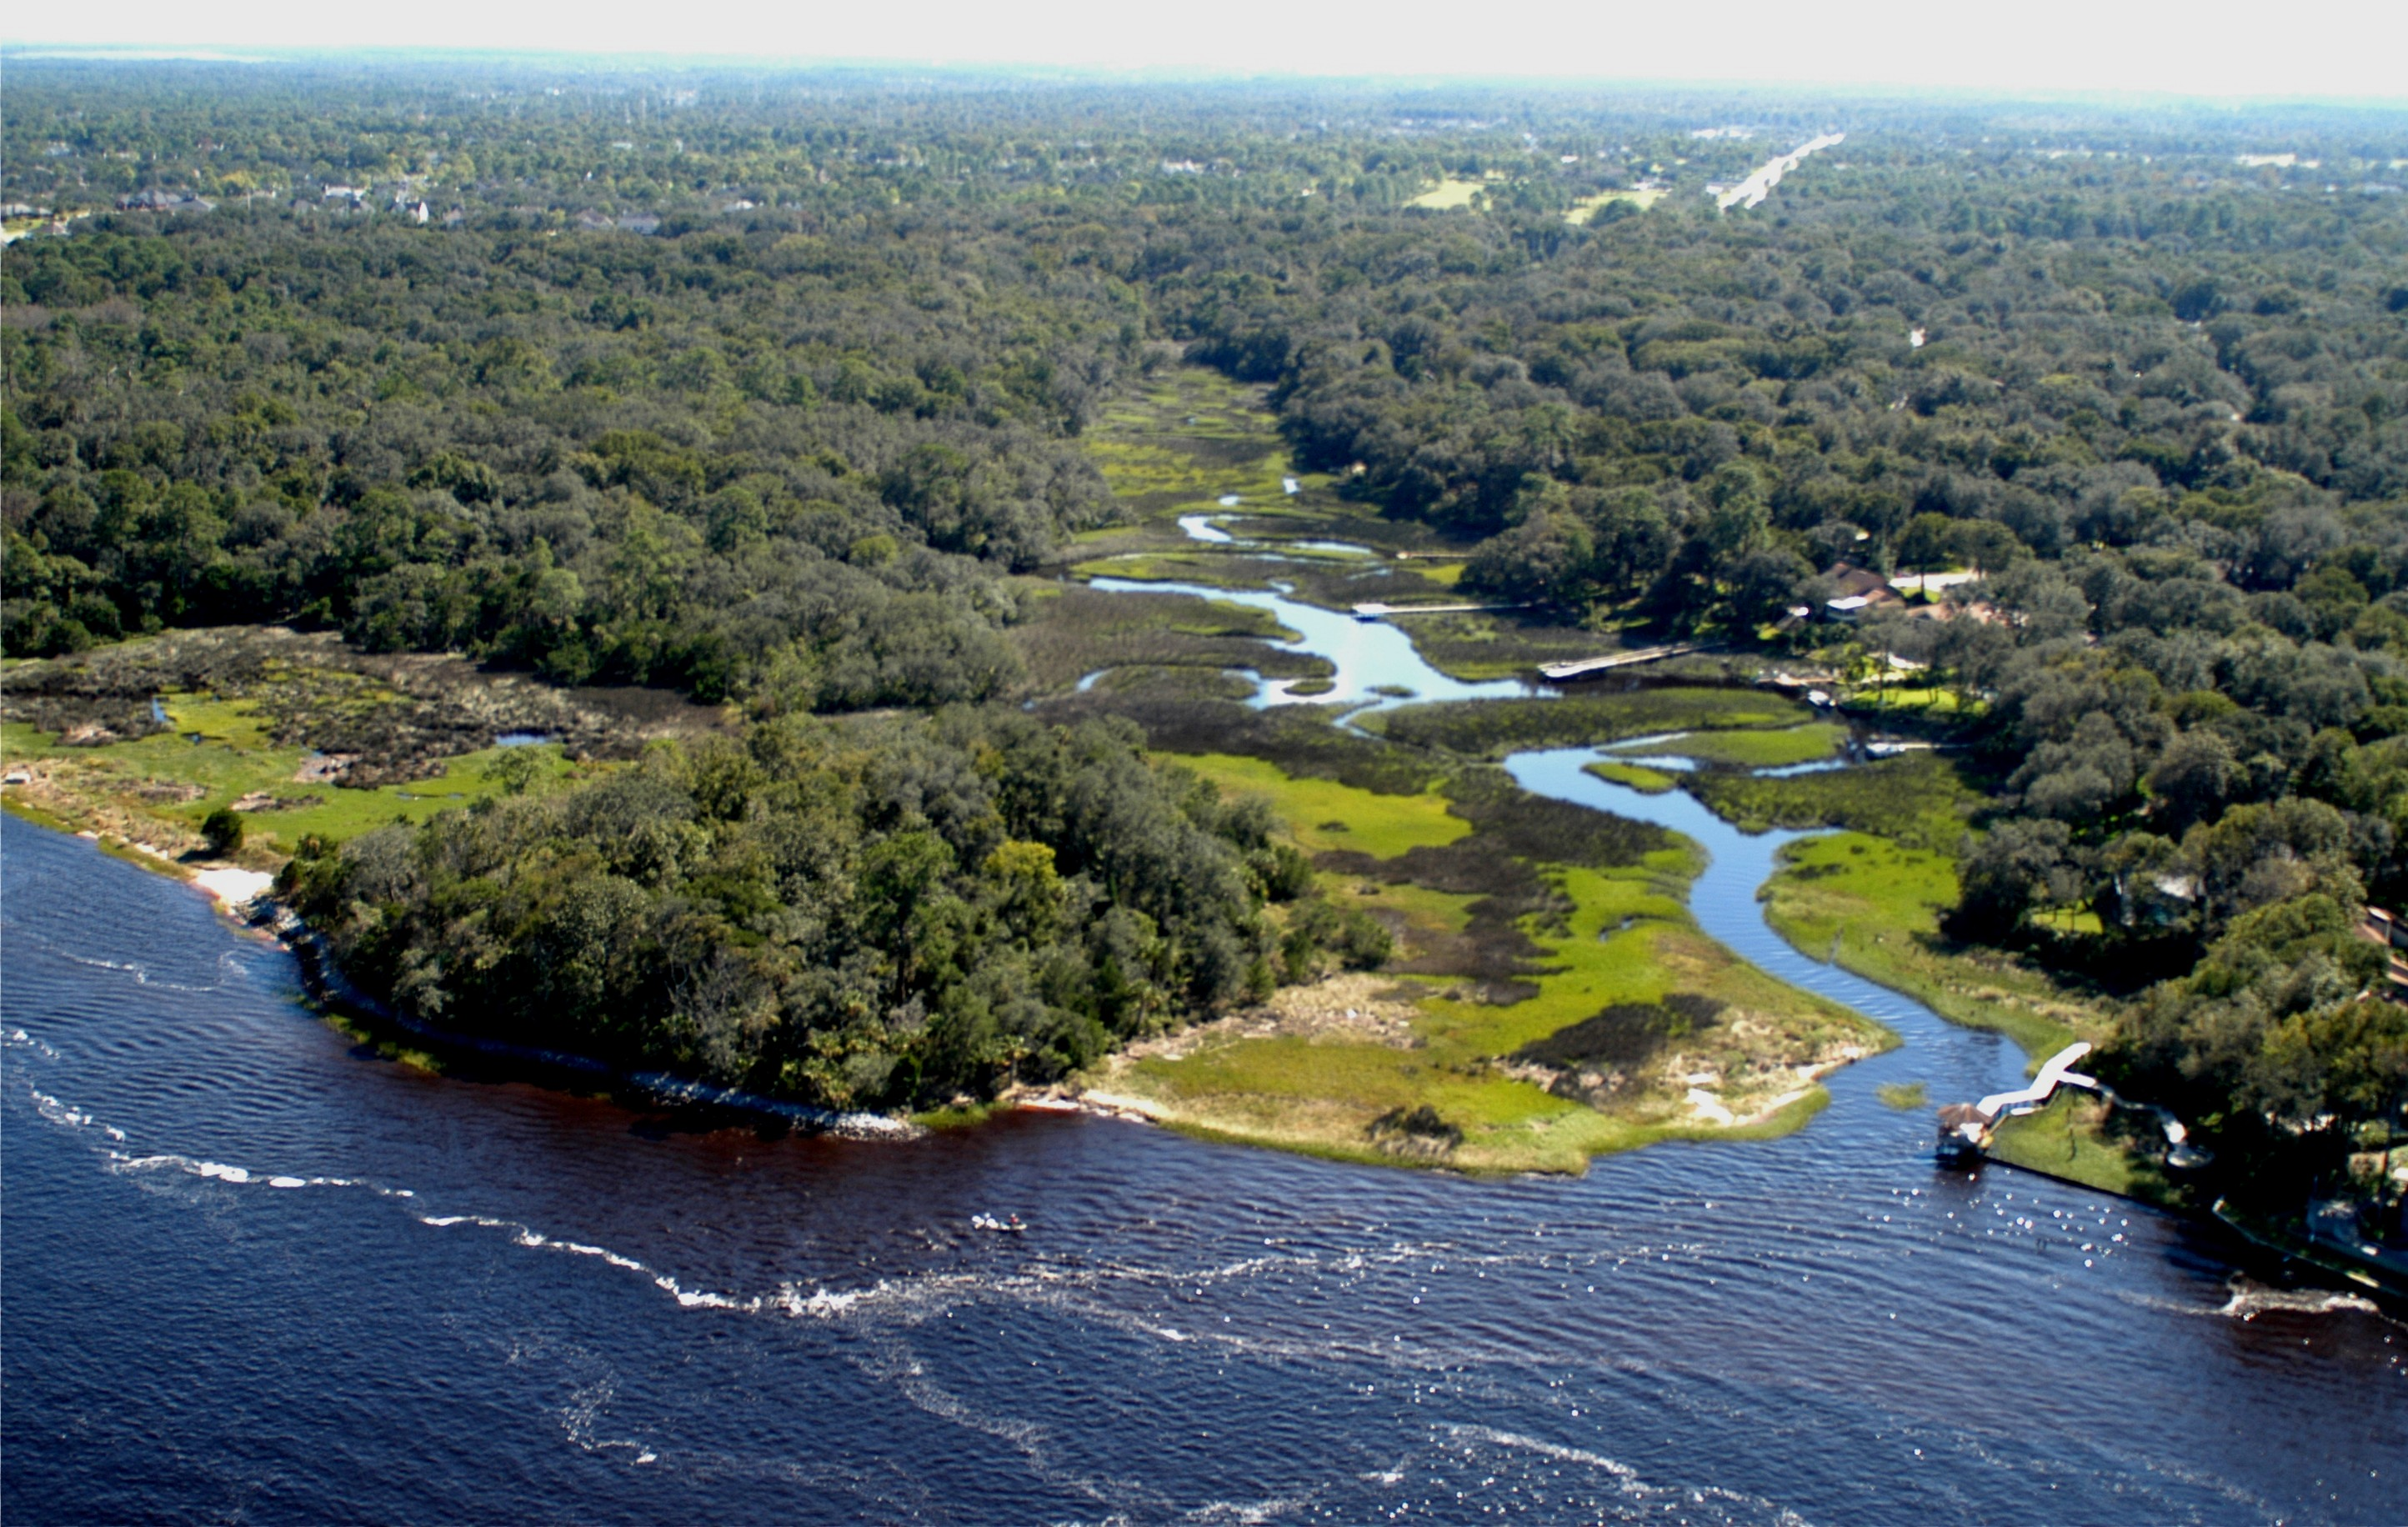 St. Johns River Backgrounds on Wallpapers Vista